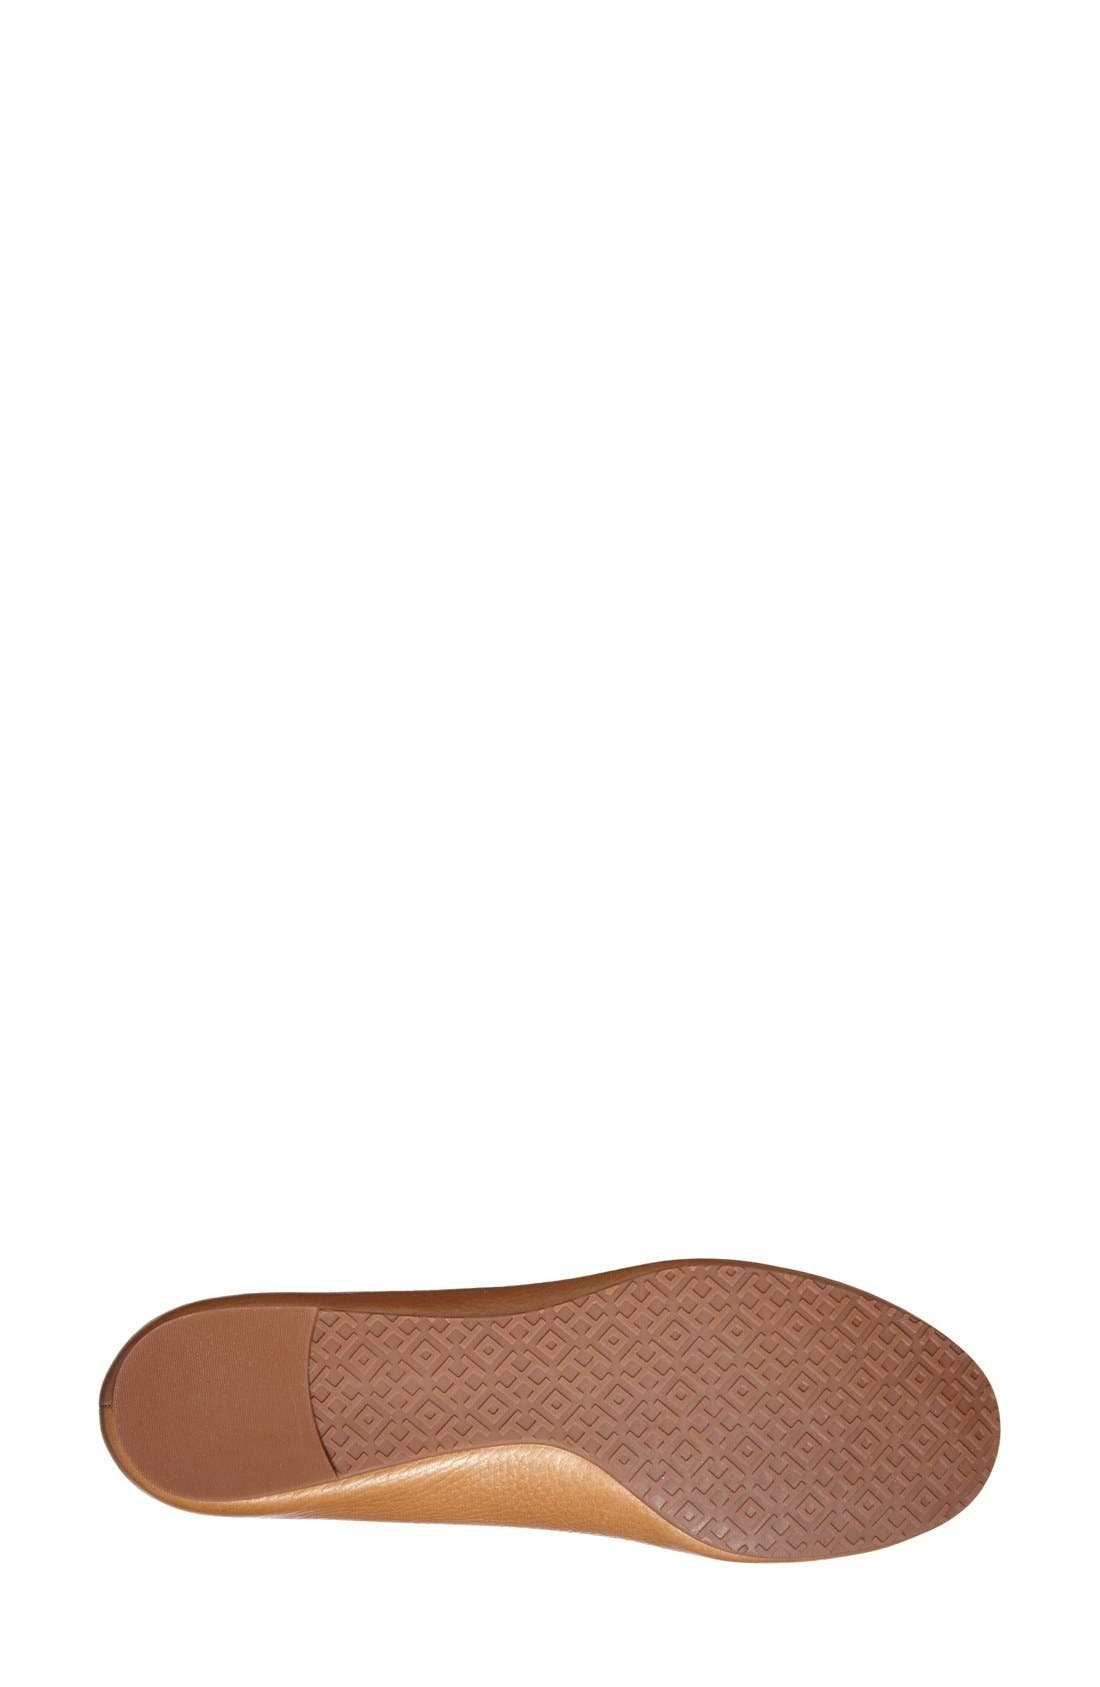 Alternate Image 4  - Tory Burch Reva Ballerina Flat (Women)